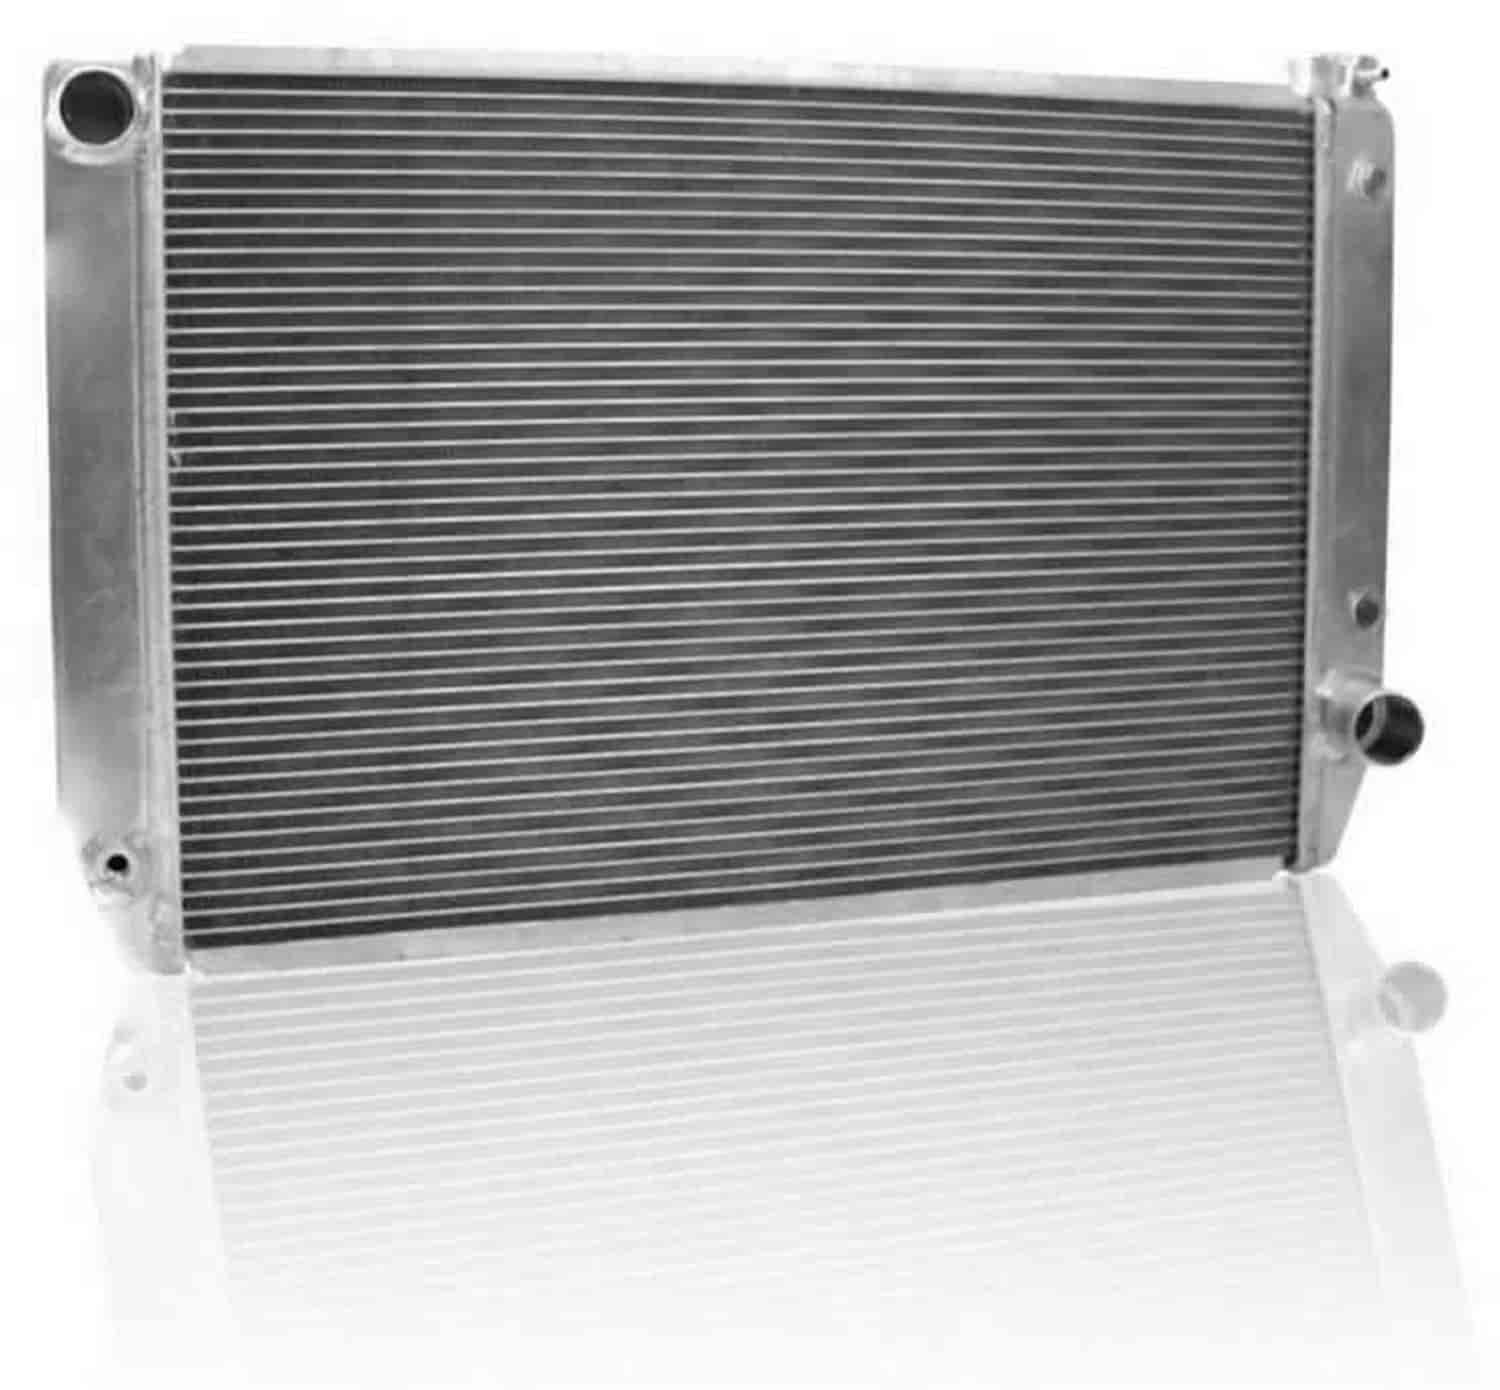 Griffin Radiators 1-25272-T